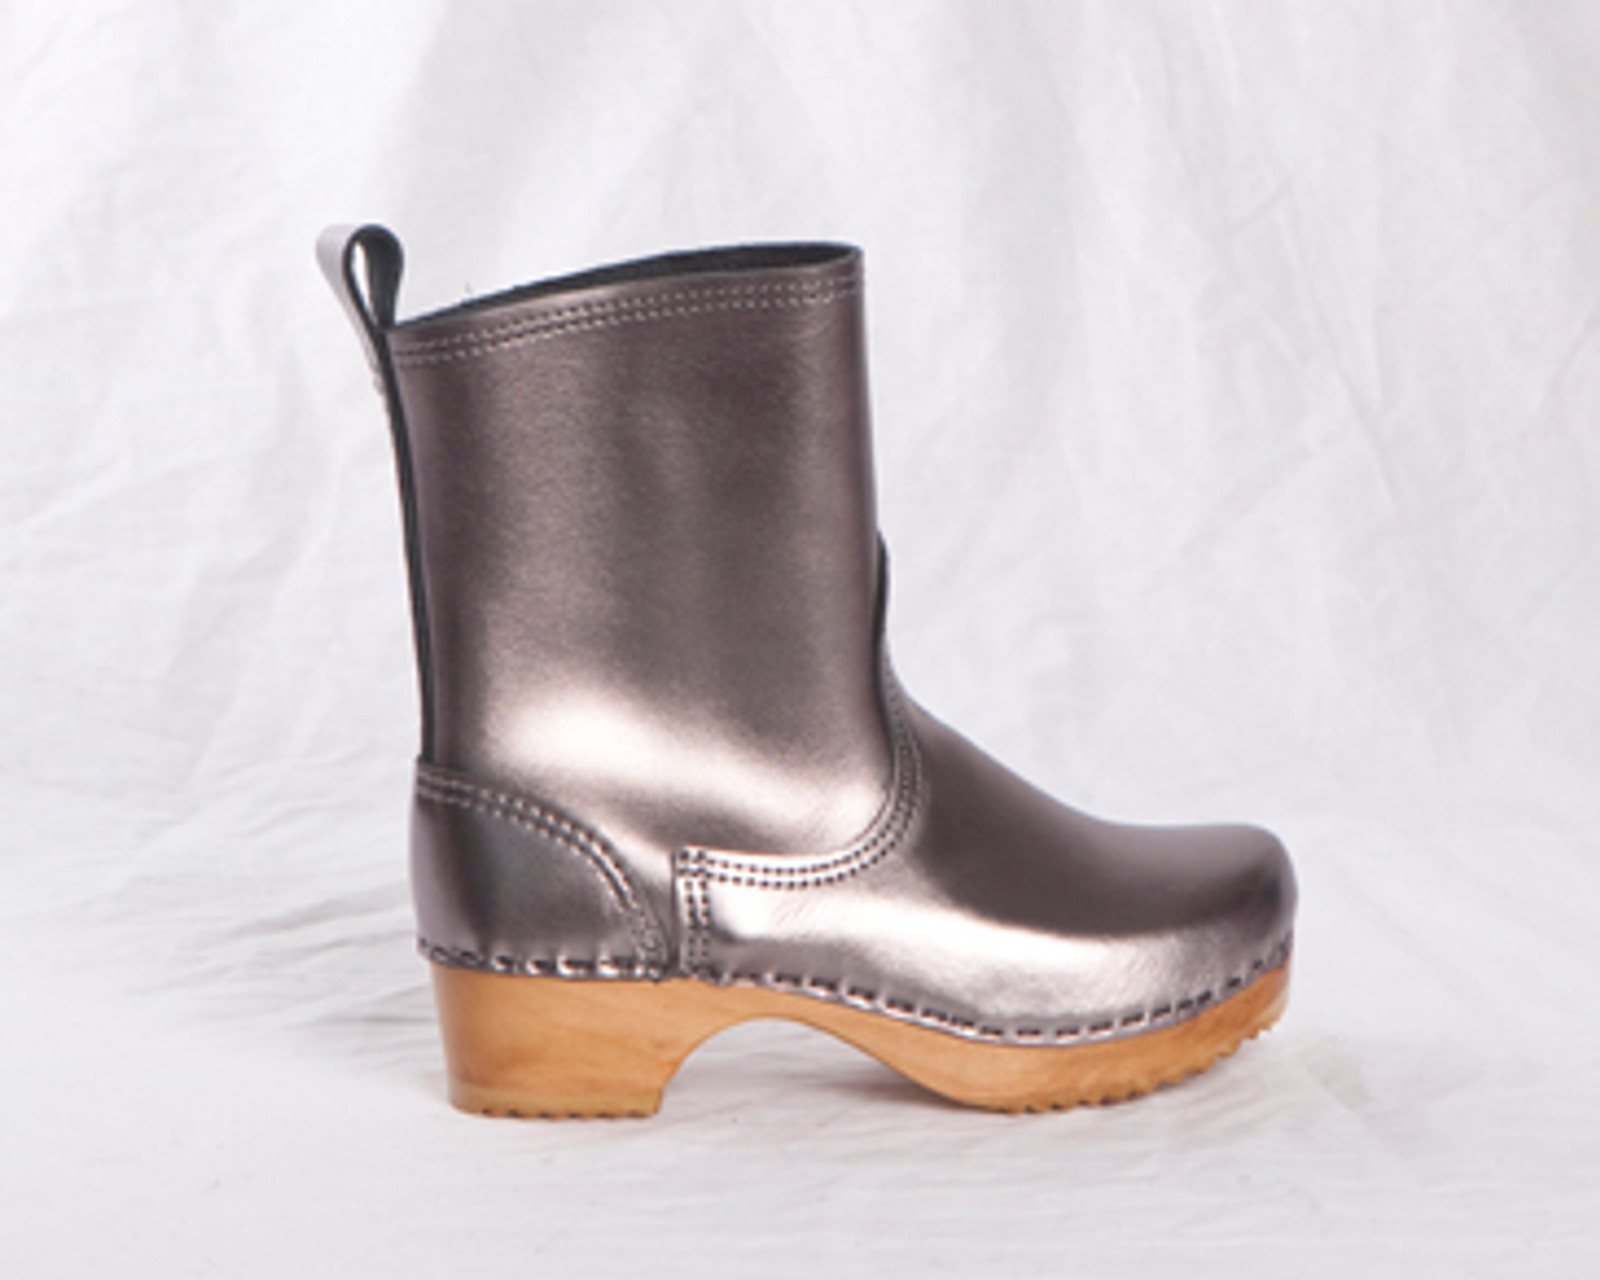 Childrens Leather Boots With Strap